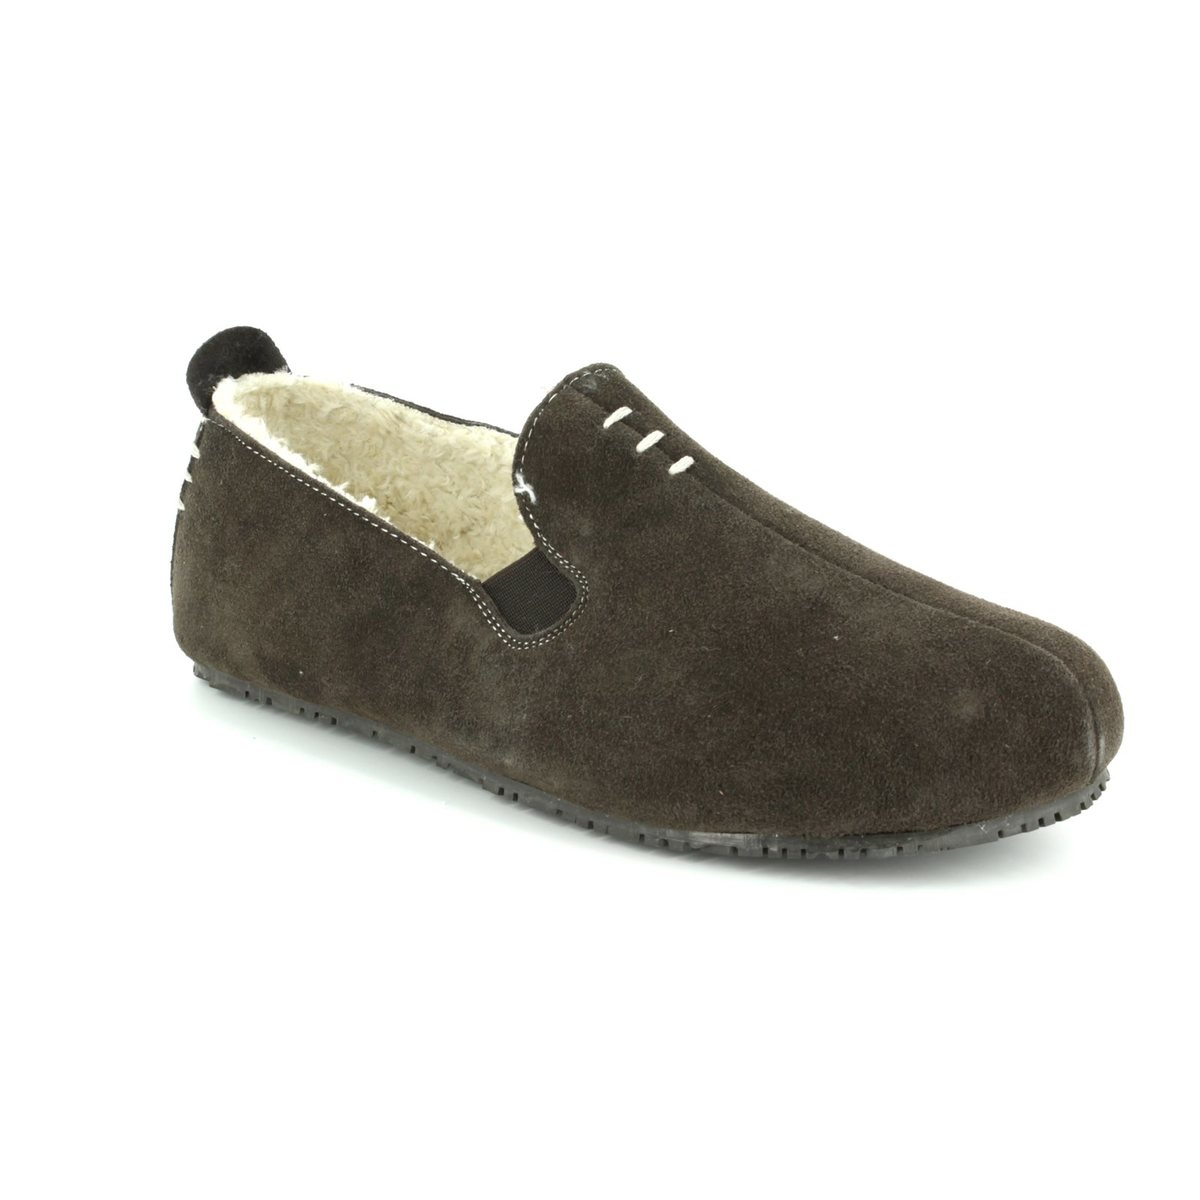 19f7b9b3a9edf Clarks Kite Falcon G Fit Brown suede mens slippers online